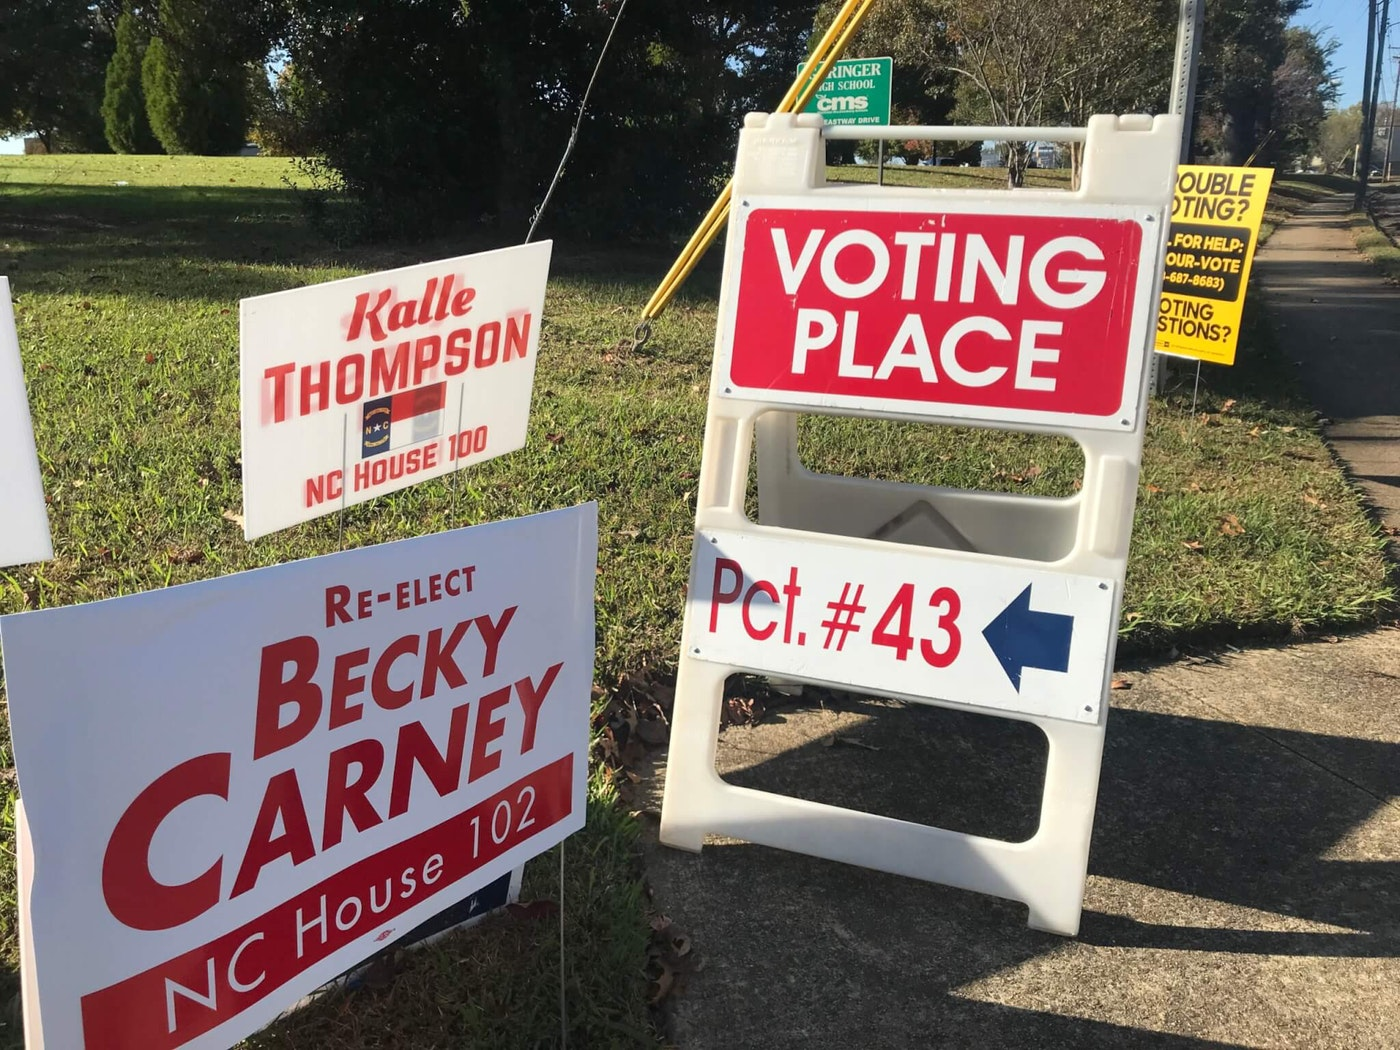 Voters at an east Charlotte precinct say they're looking for change. (Image by Pat Moran)